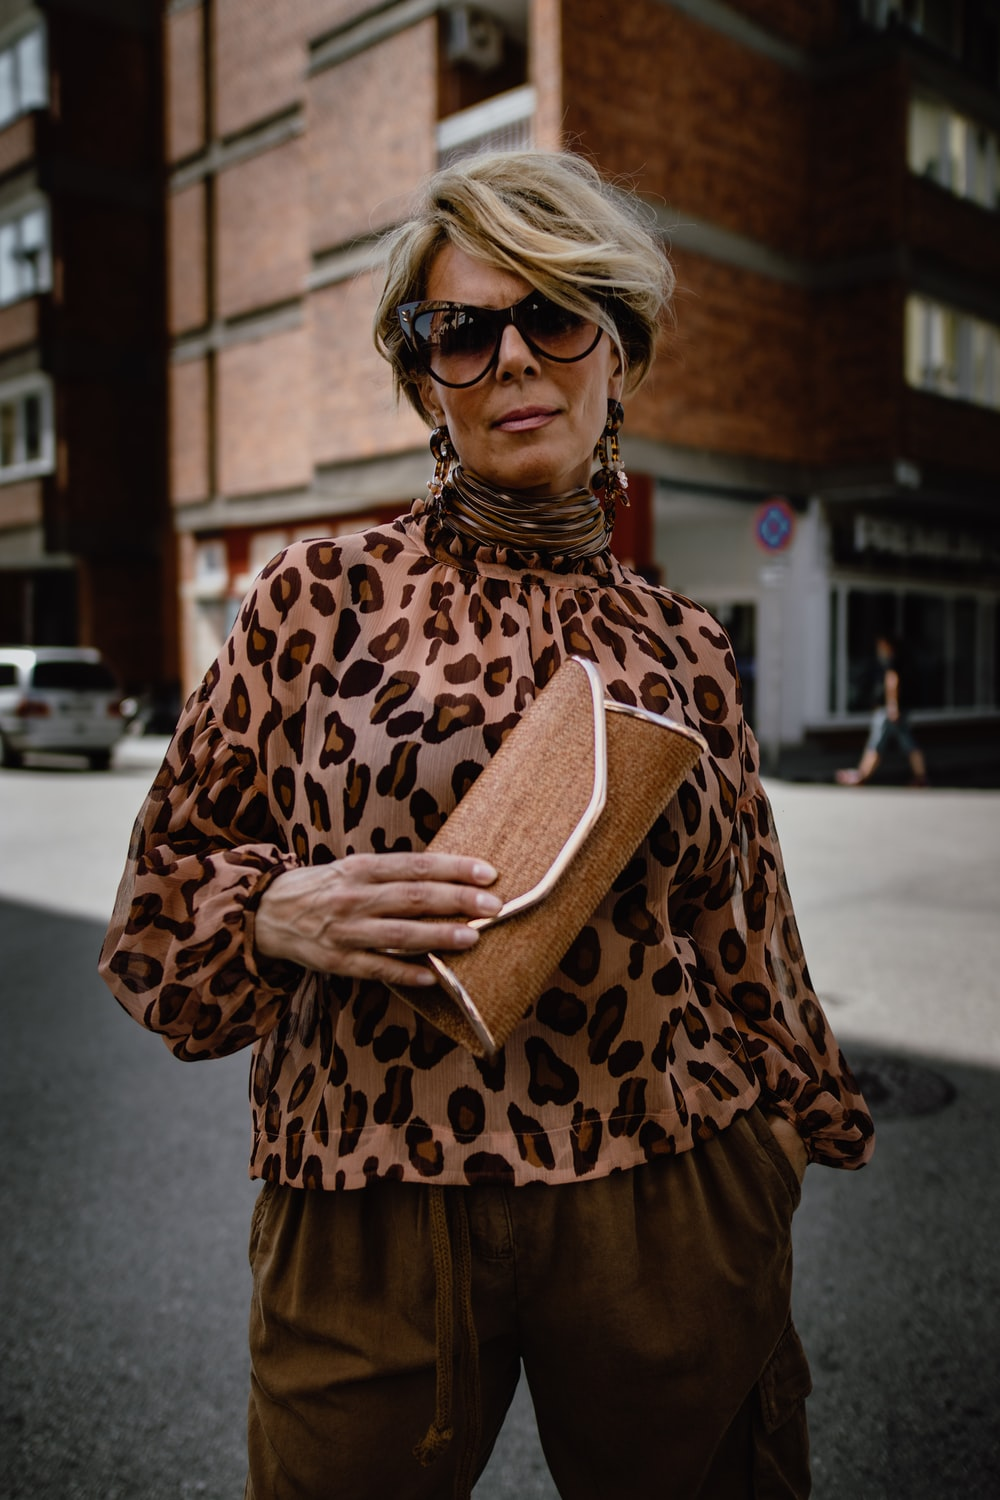 woman wearing brown leopard long-sleeved blouse holding brown pouch standing